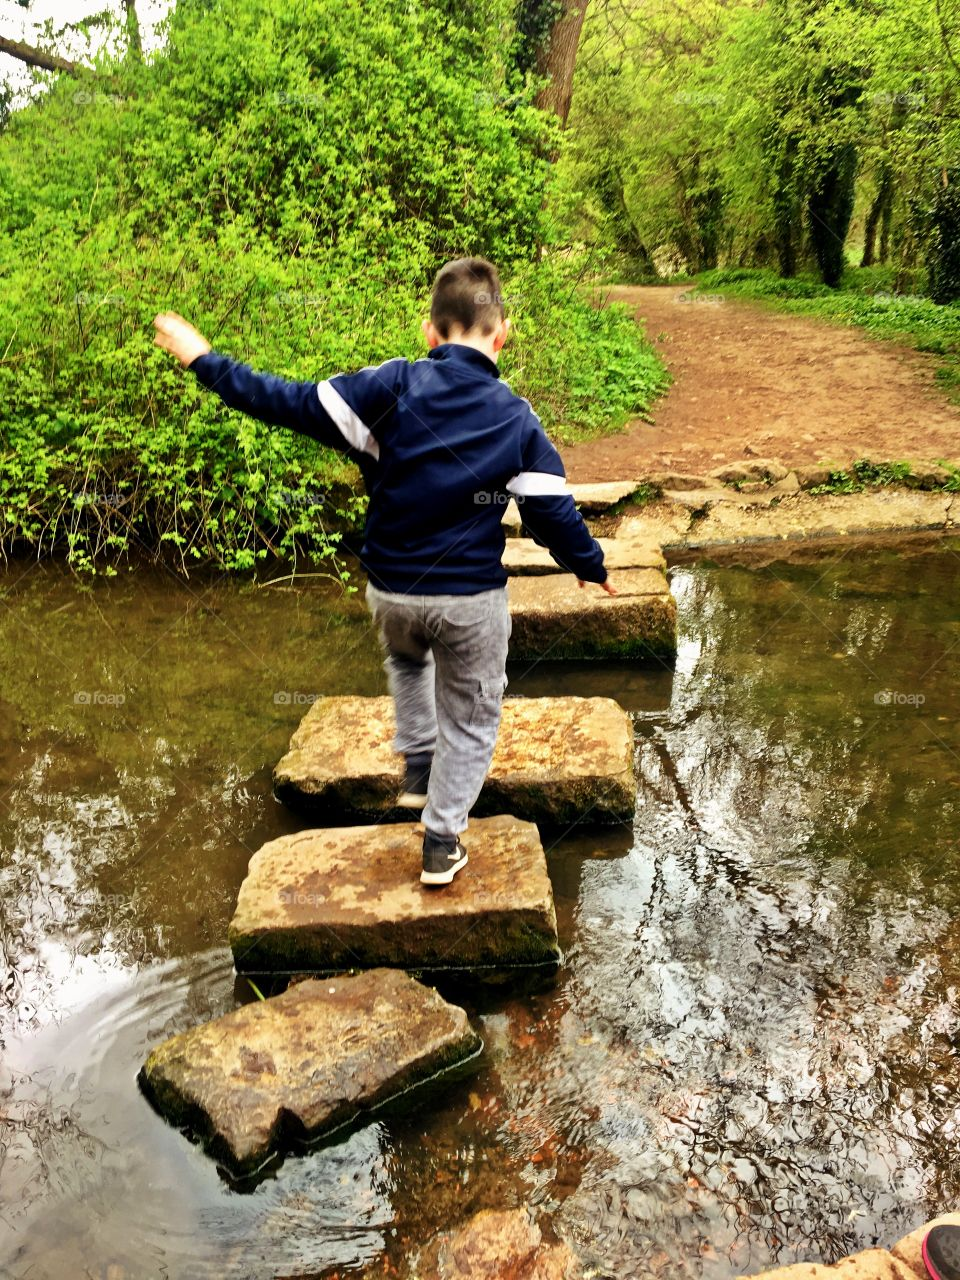 Boy crossing a river on stepping stones